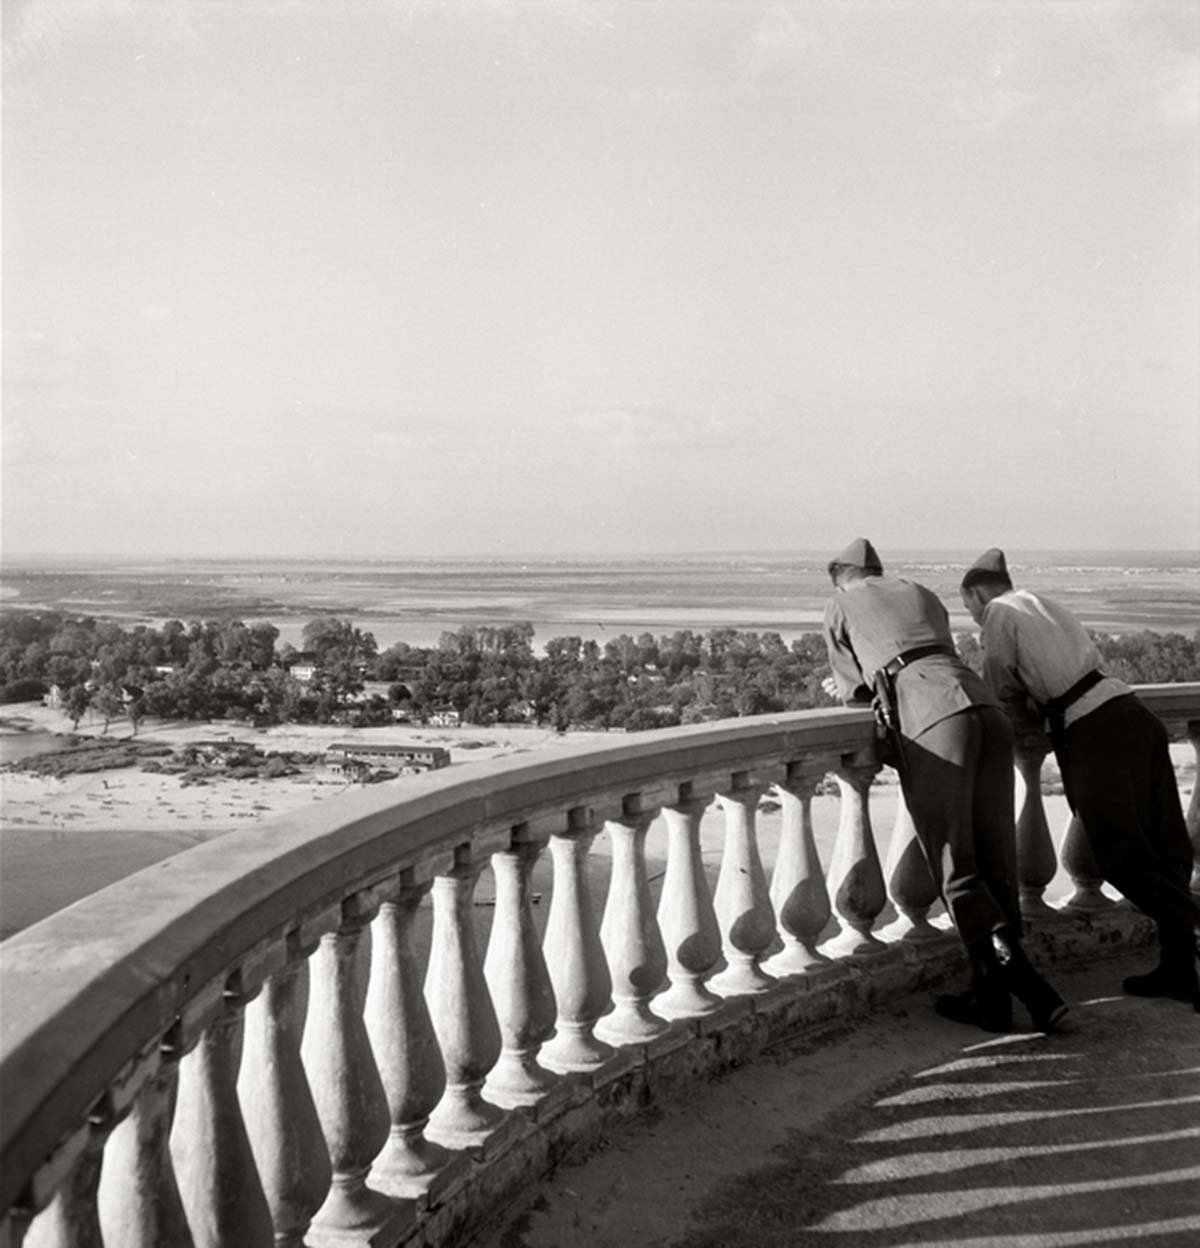 Two Wehrmachts Soldier at a vista point of the Dnpr near Kiev.